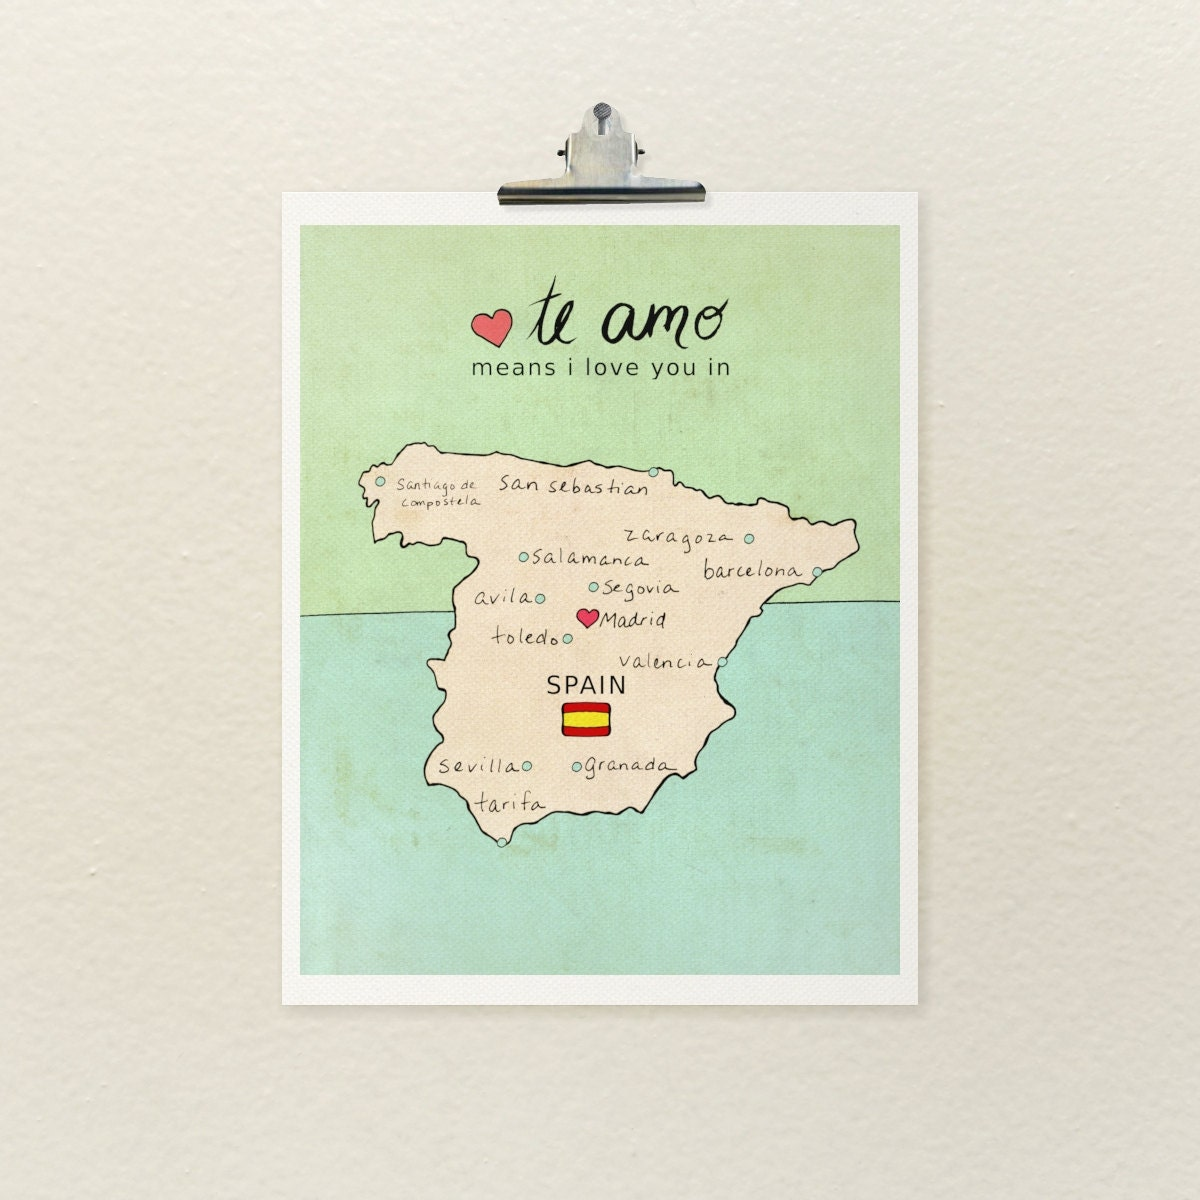 I Love You in Spain Illustration Print Map by LisaBarbero